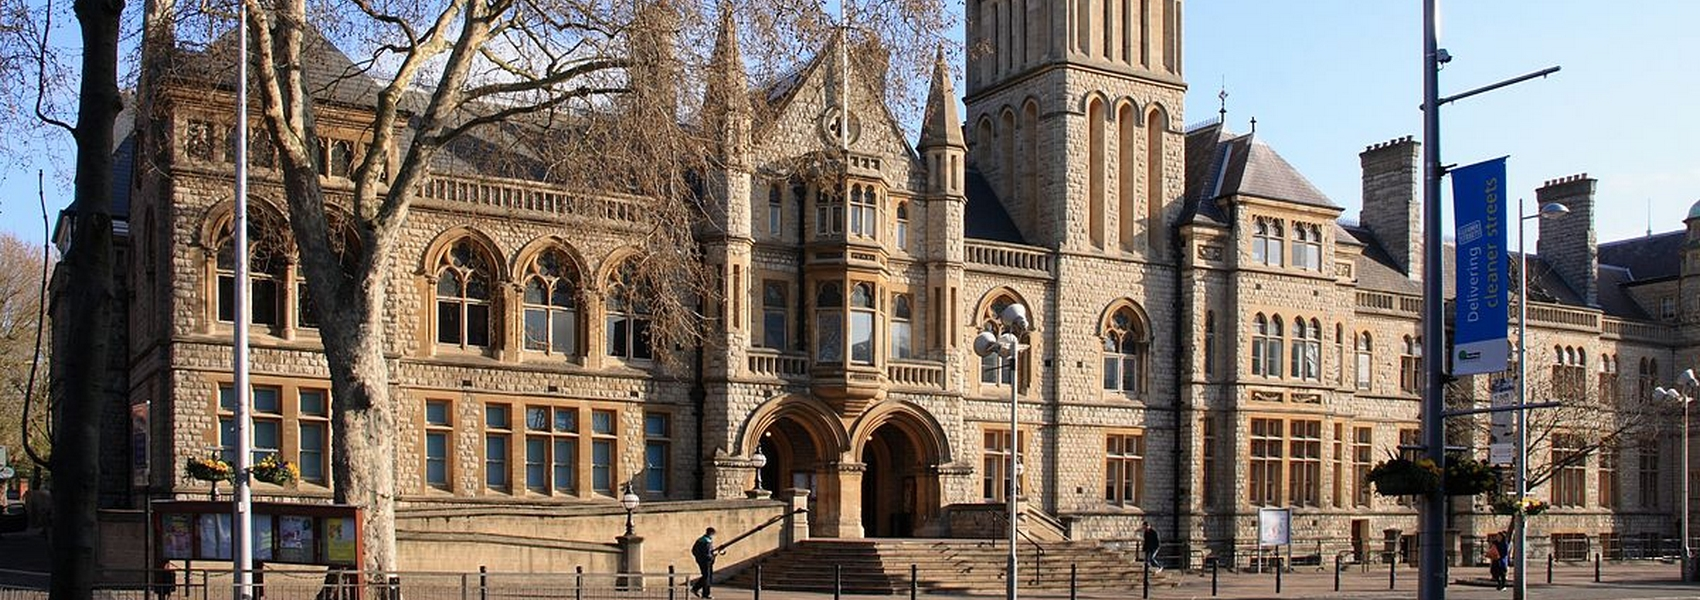 ealing-town-hall-1700-x-600